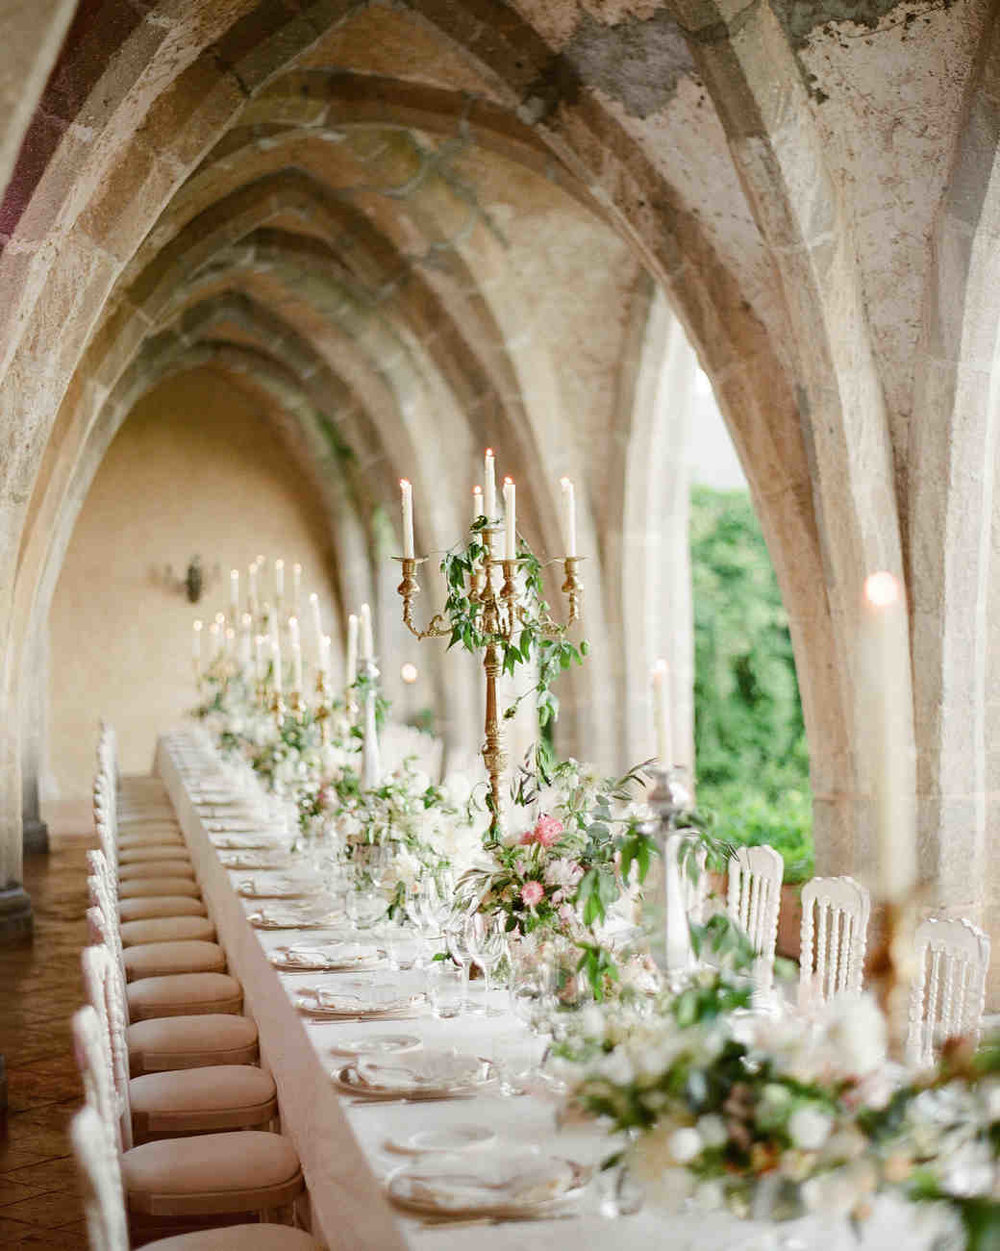 lisa-greg-italy-wedding-table-103312971_vert.jpg